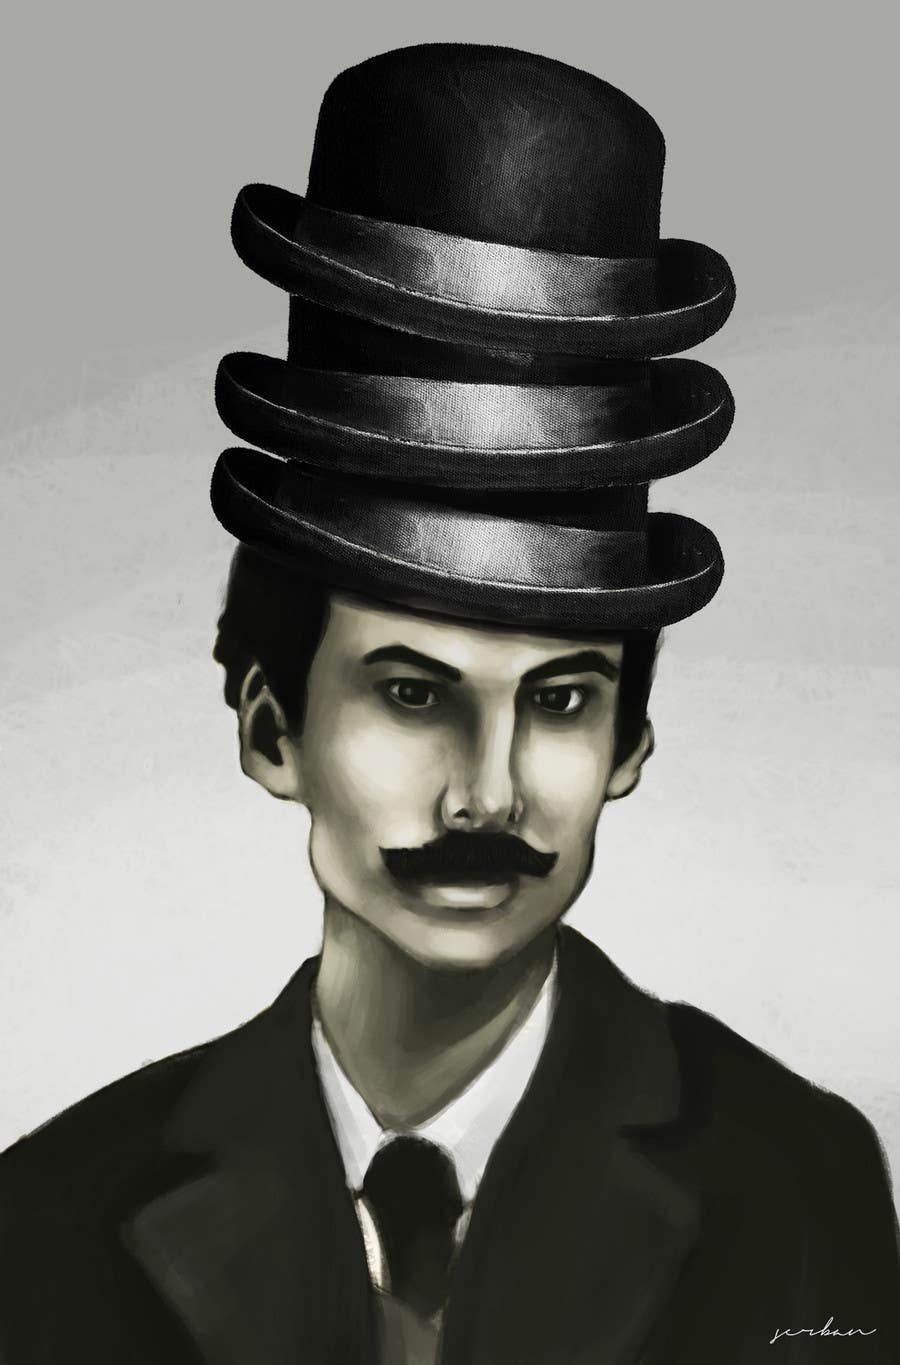 Konkurrenceindlæg #                                        6                                      for                                         Create a Portrait Drawing of a late 19th Century Man wearing Multiple Bowler Hats